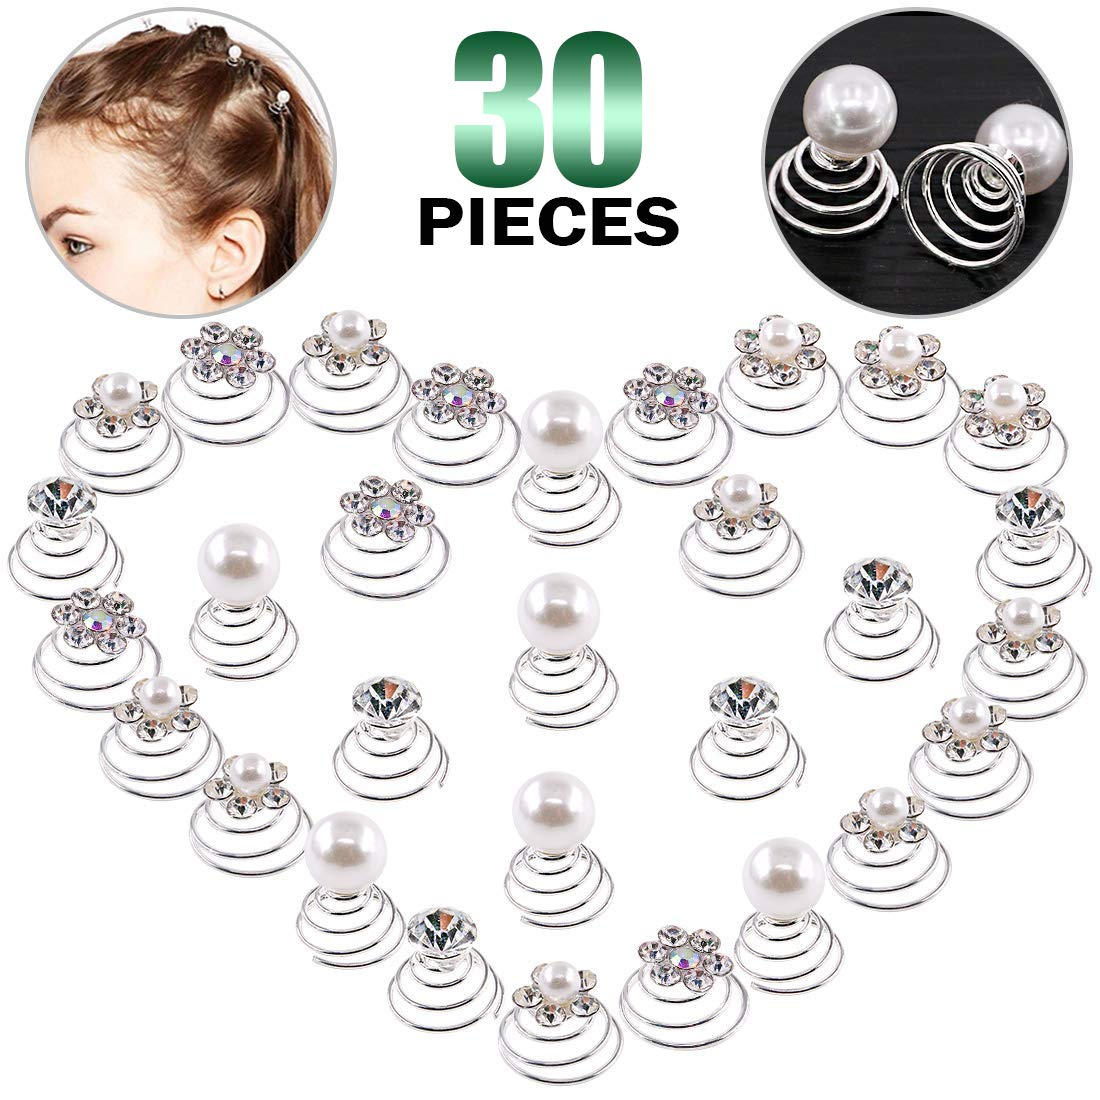 Keadic 30Pcs 5 Types of Professional Spiral Hair Pins Clear Crystal Swirl Hair Twists Coils Spirals Hair Pin Clip Accessories for Delicate Women' Wedding Prom Party and Special Occasions